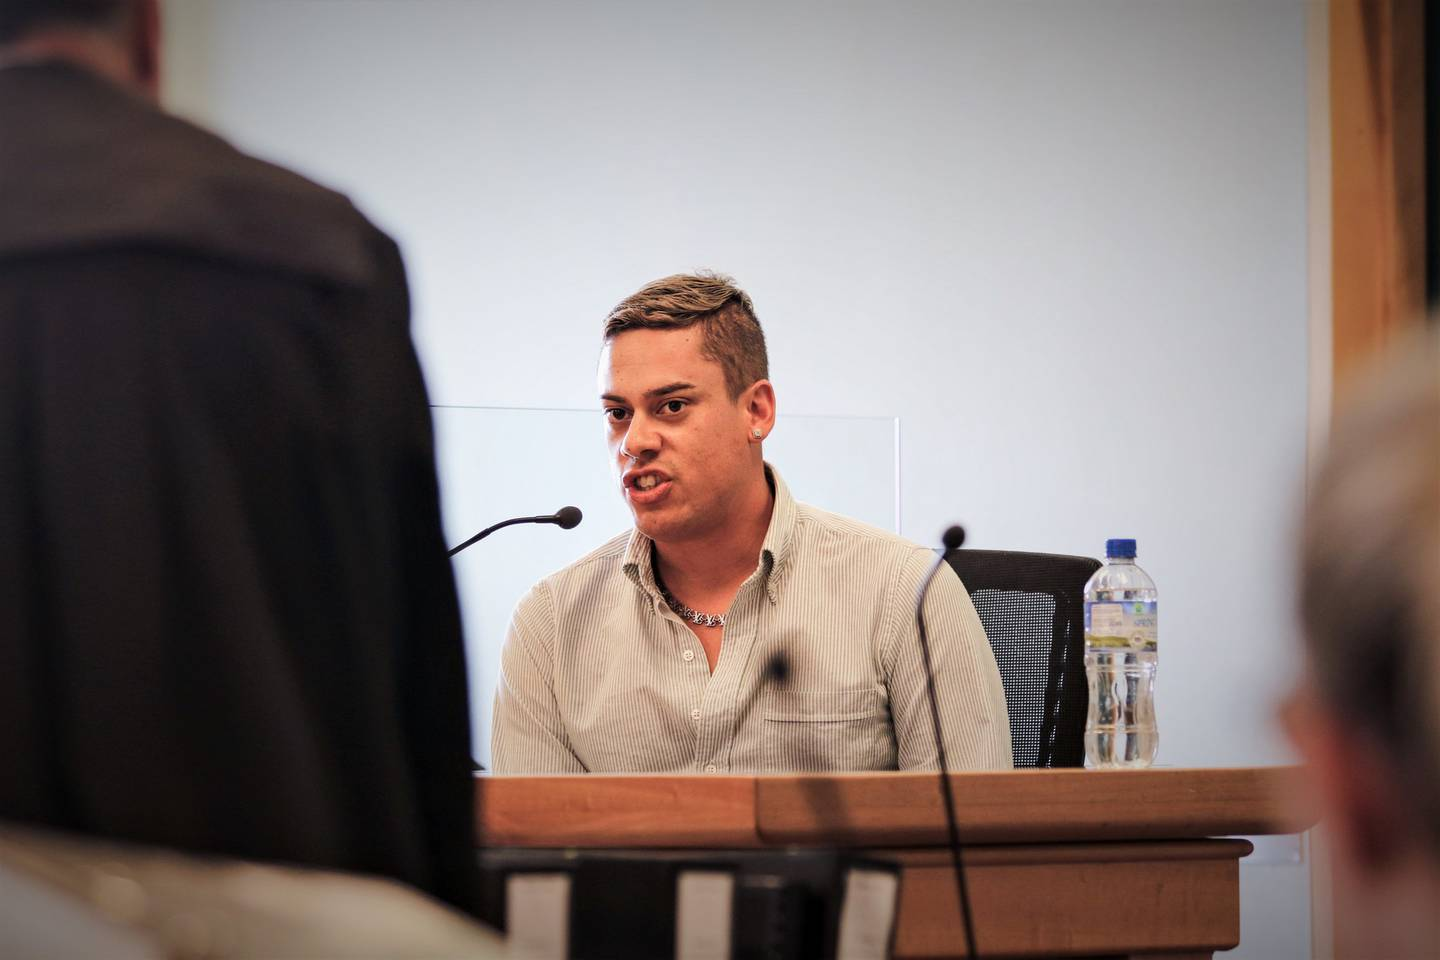 PR consultant Hamish Jevan Goulter was given immunity from prosecution in exchange for his evidence. Photo / Sam Hurley